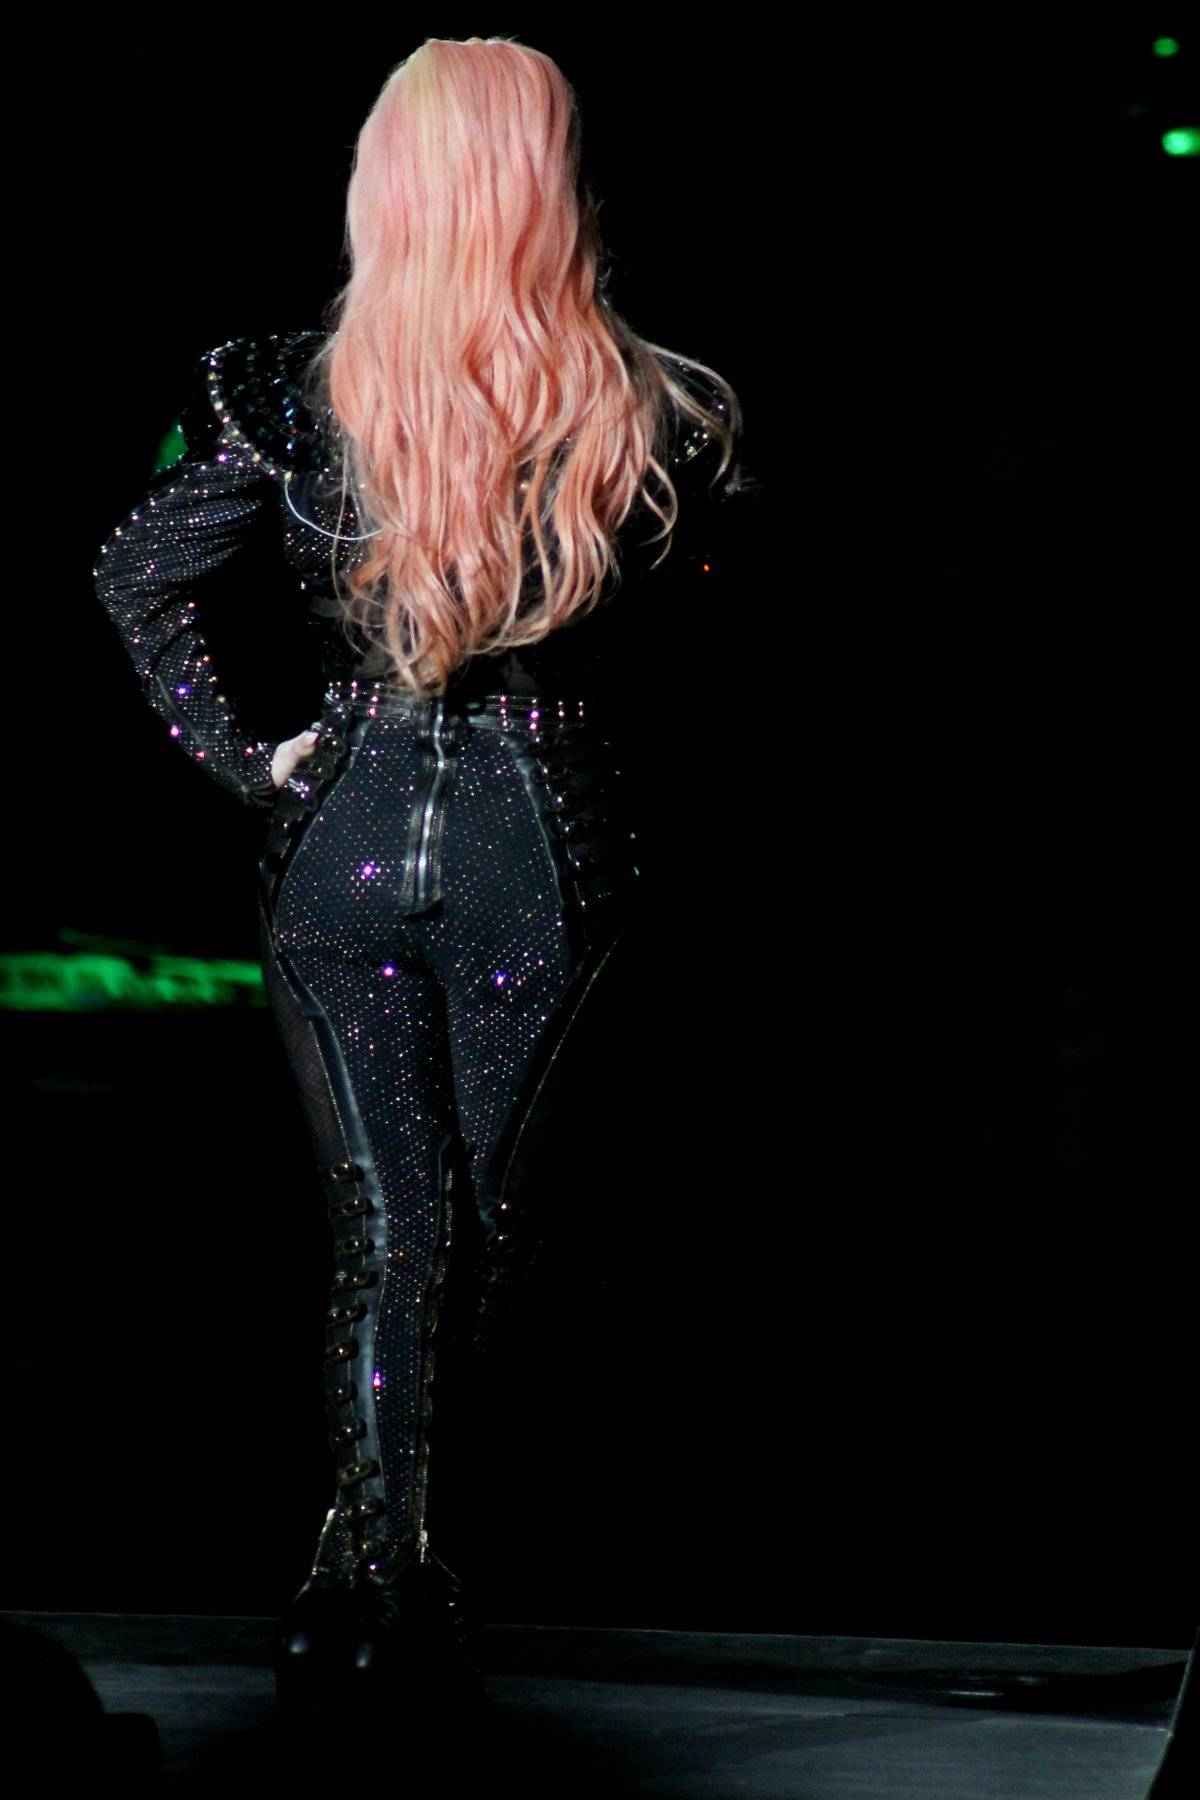 Recital de Lady Gaga en Chile